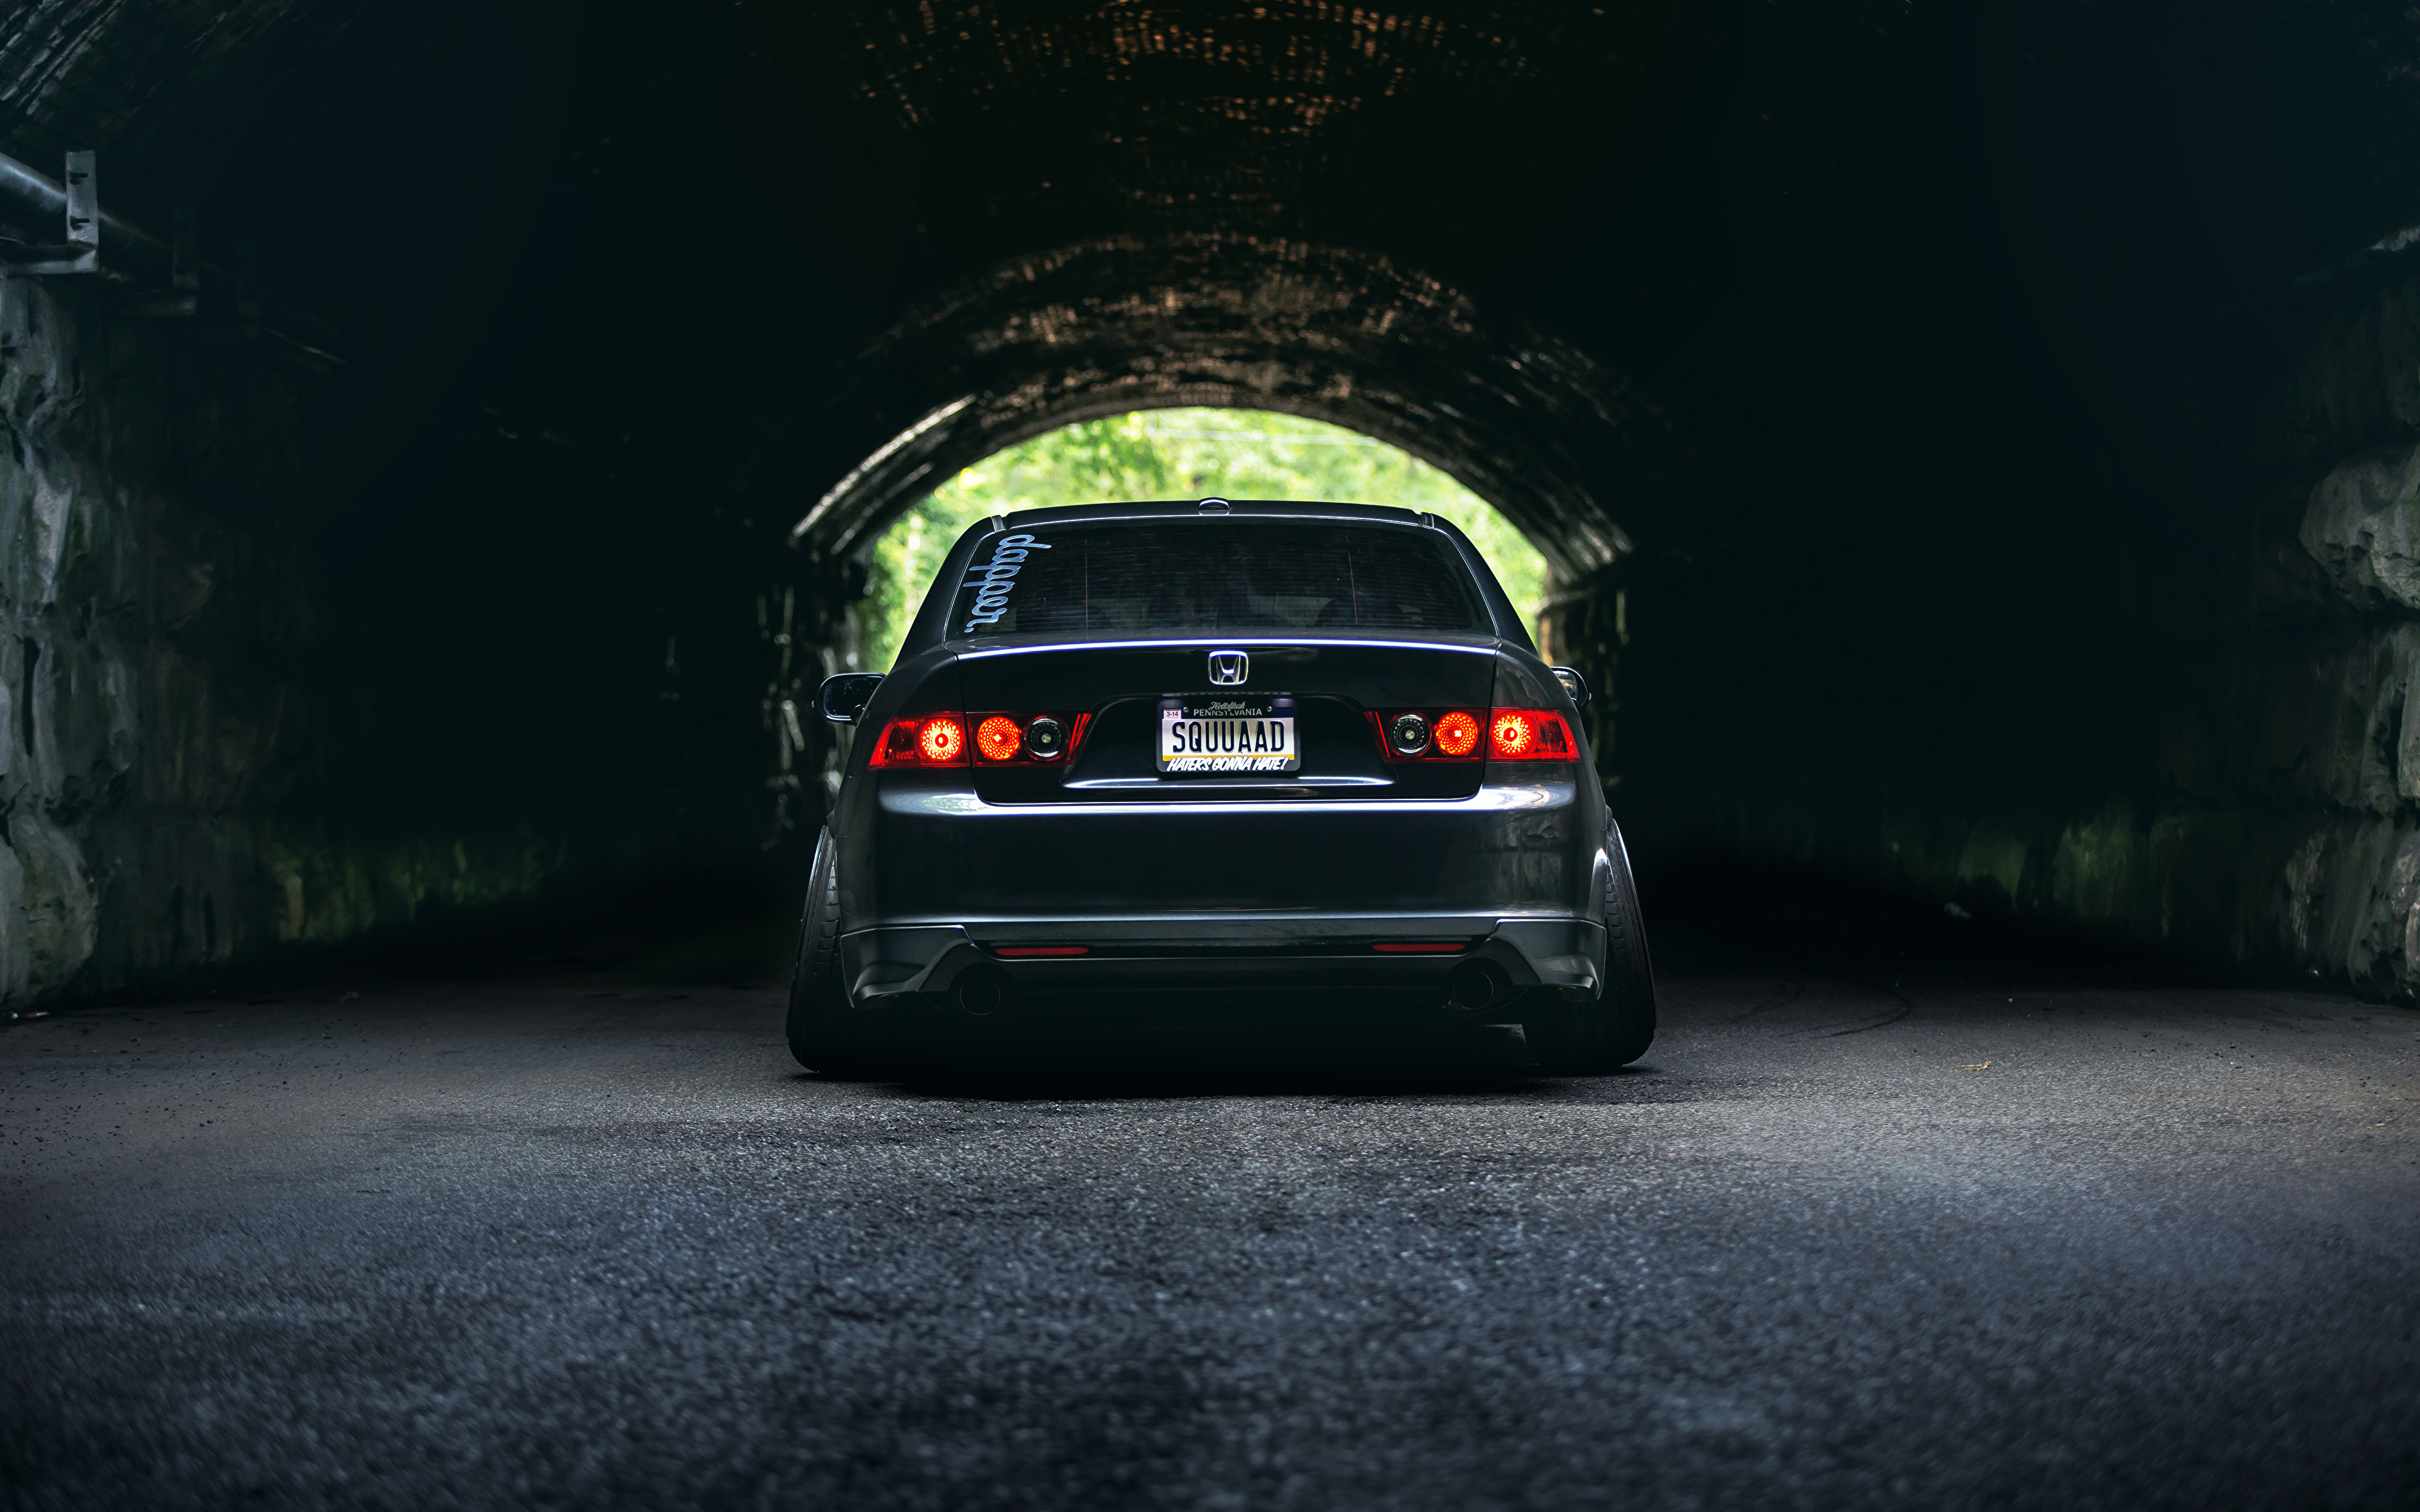 3840x2400 - Acura TSX Wallpapers 11